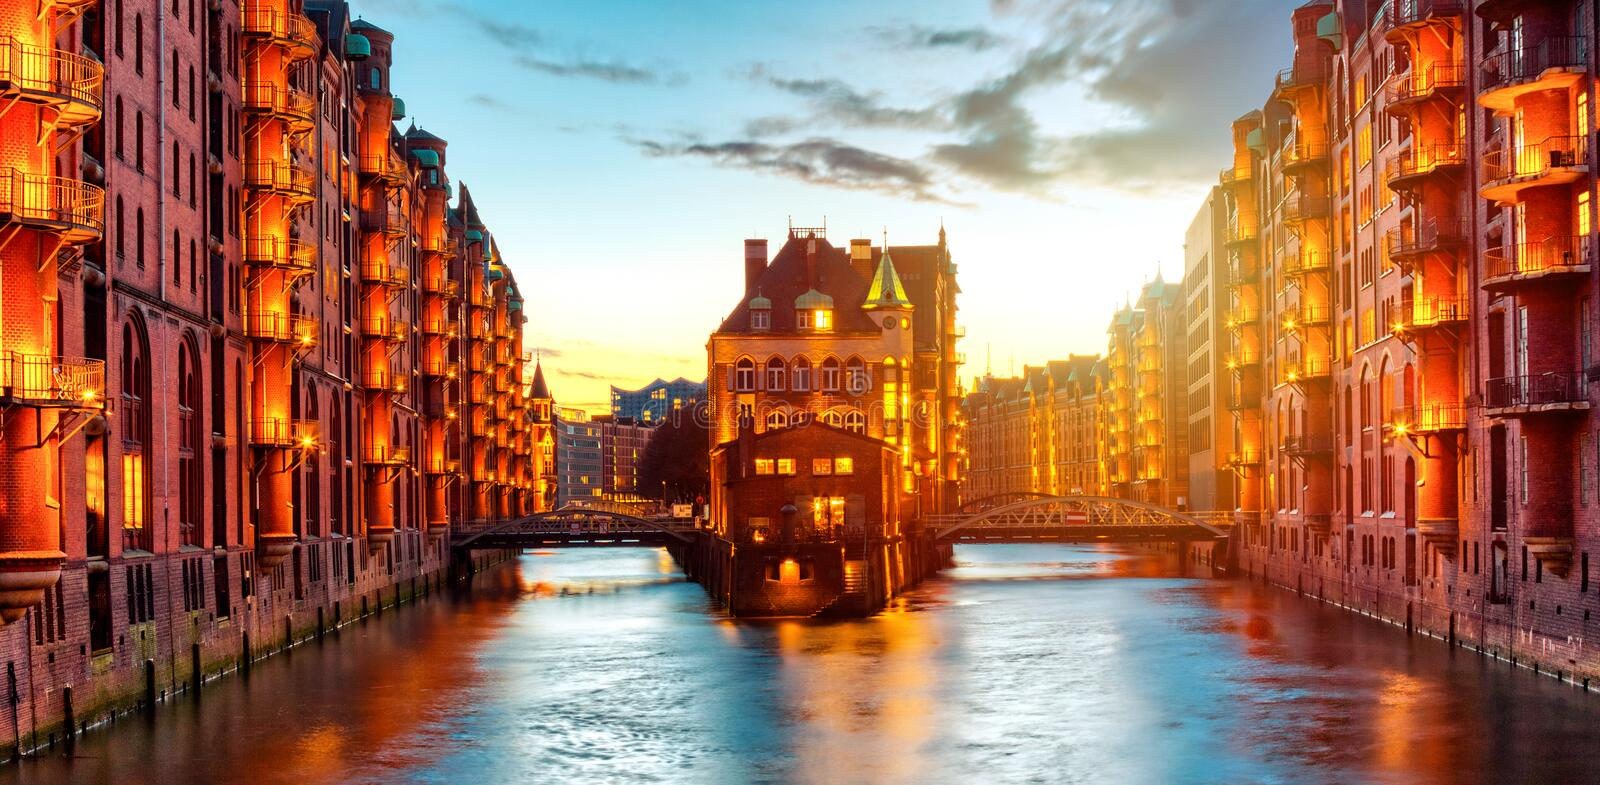 The Warehouse district Speicherstadt during twilight sunset in Hamburg, Germany. Illuminated warehouses in Hafencity quarter in stock image